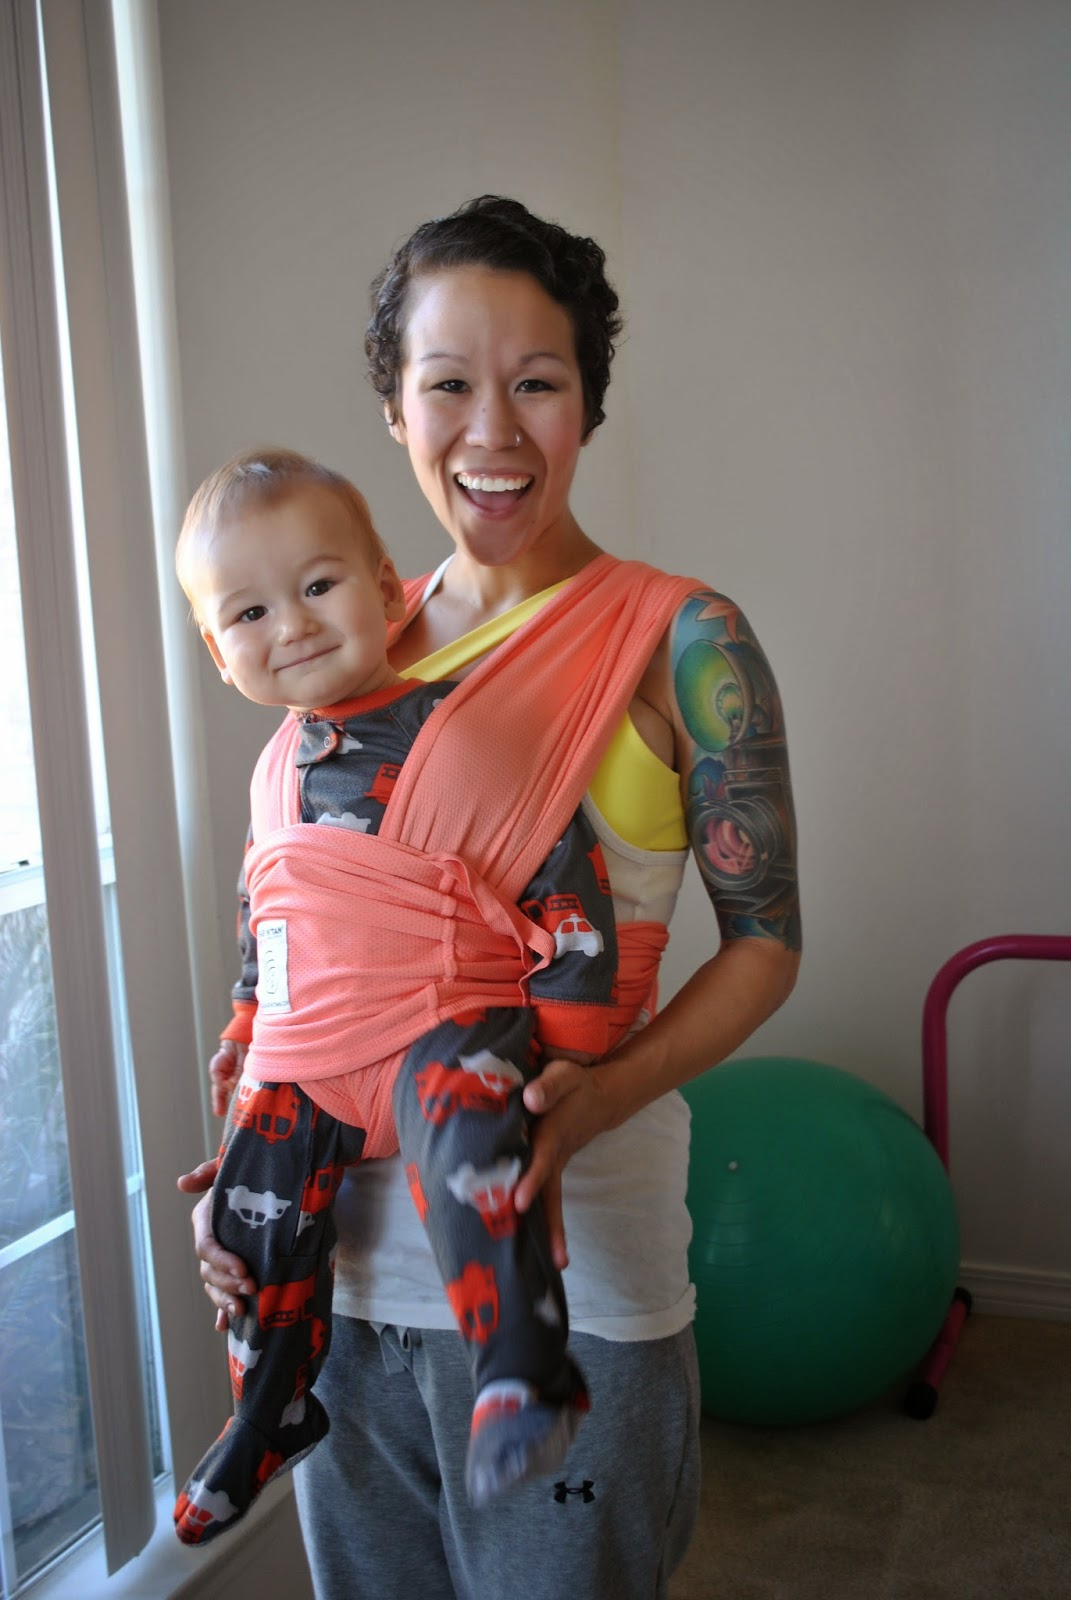 Diary of a Fit Mommy: I Love Babywearing With My Baby K ...